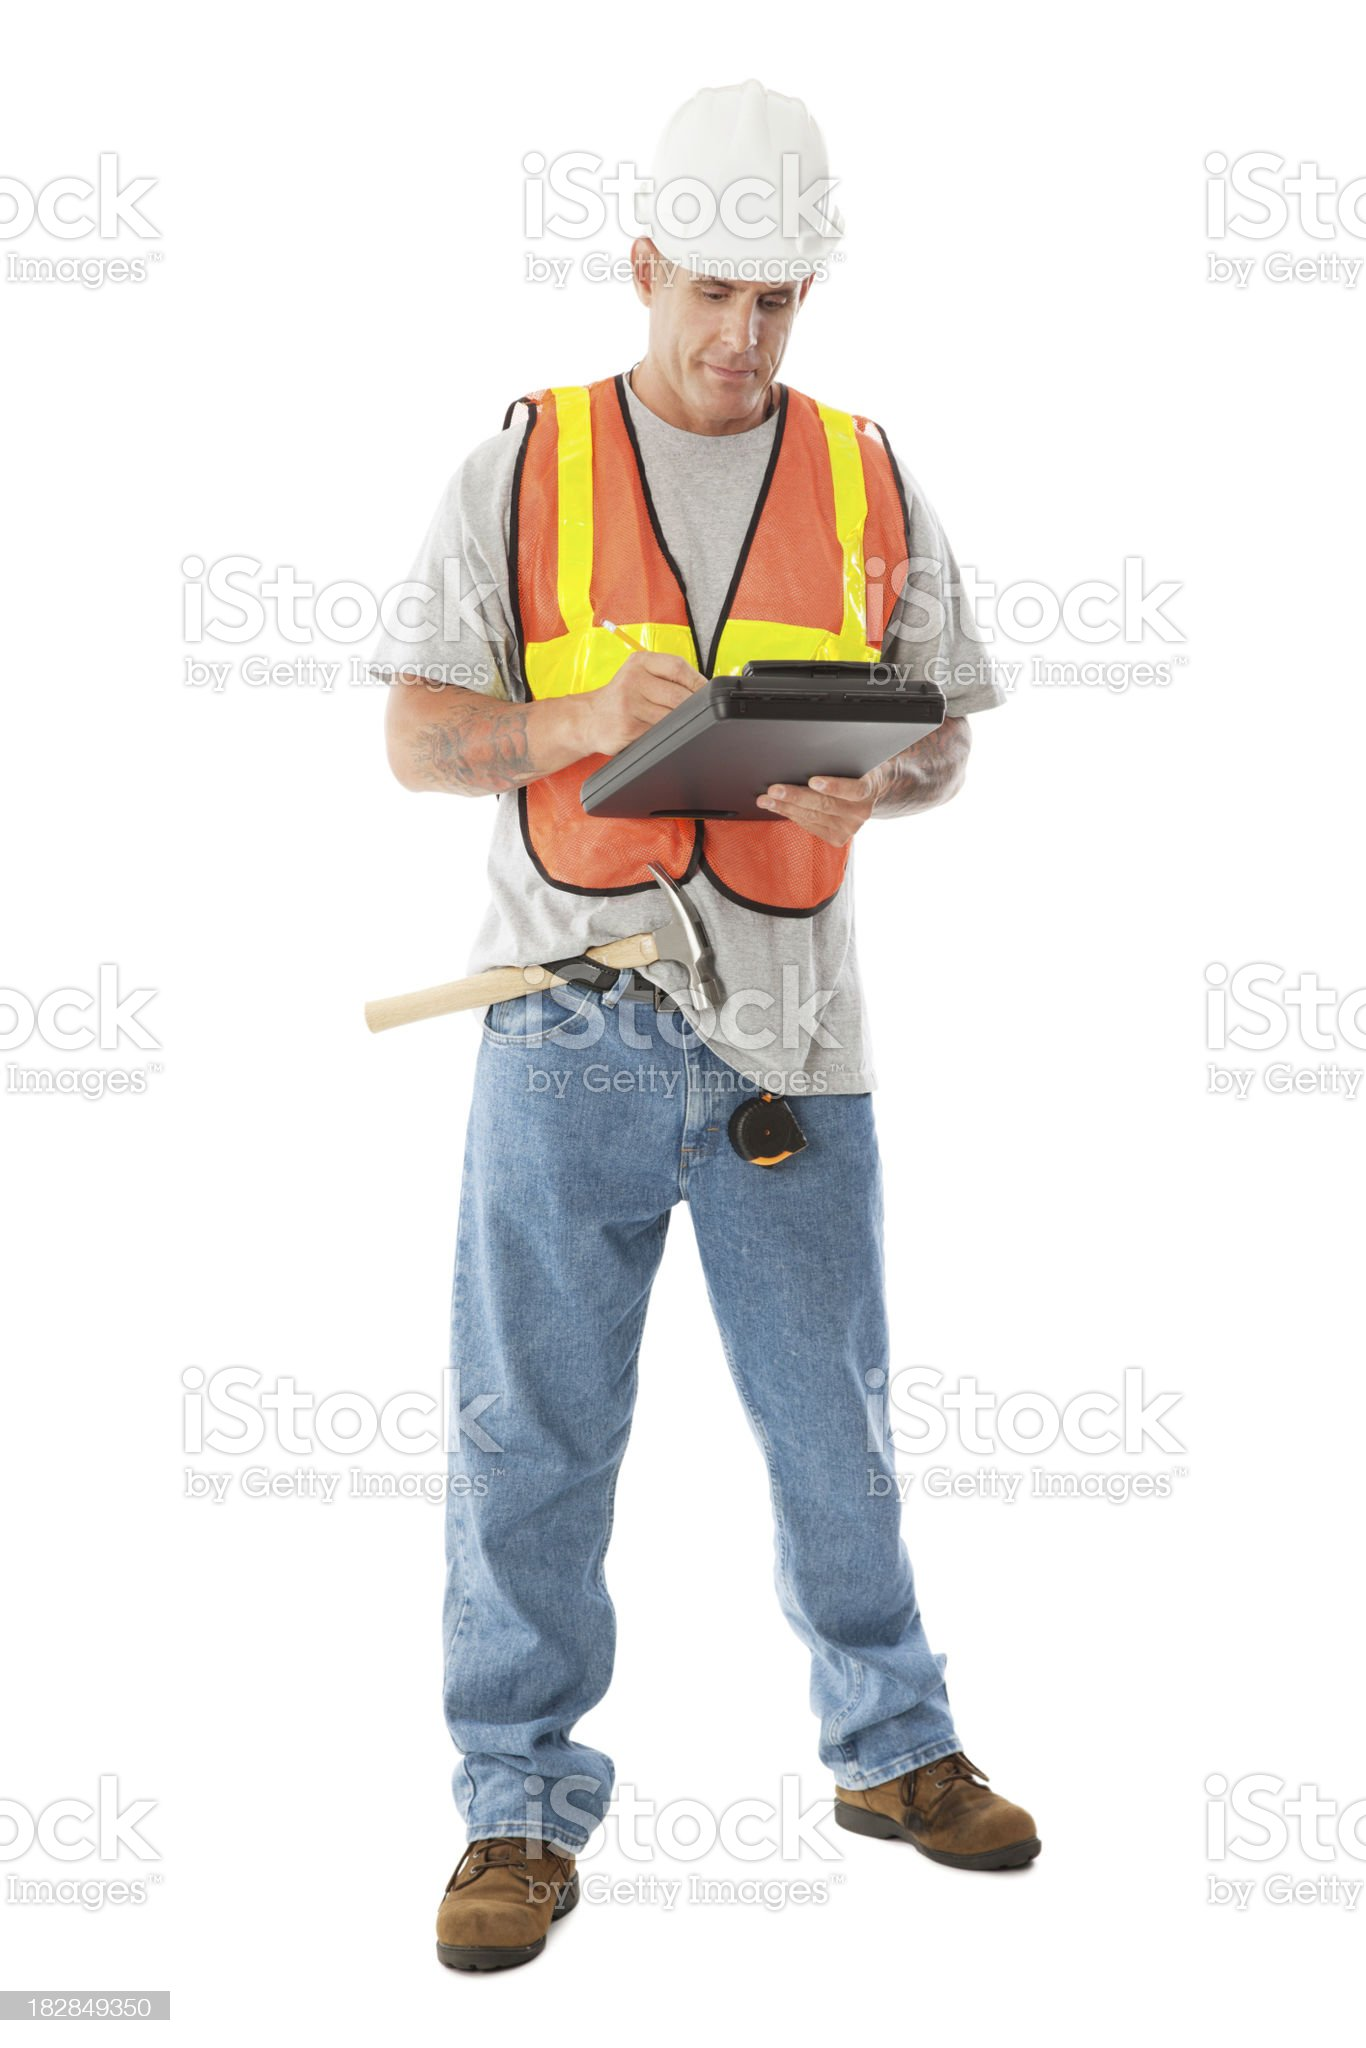 Construction Worker Writing Notes, Full Body Isolated on White royalty-free stock photo